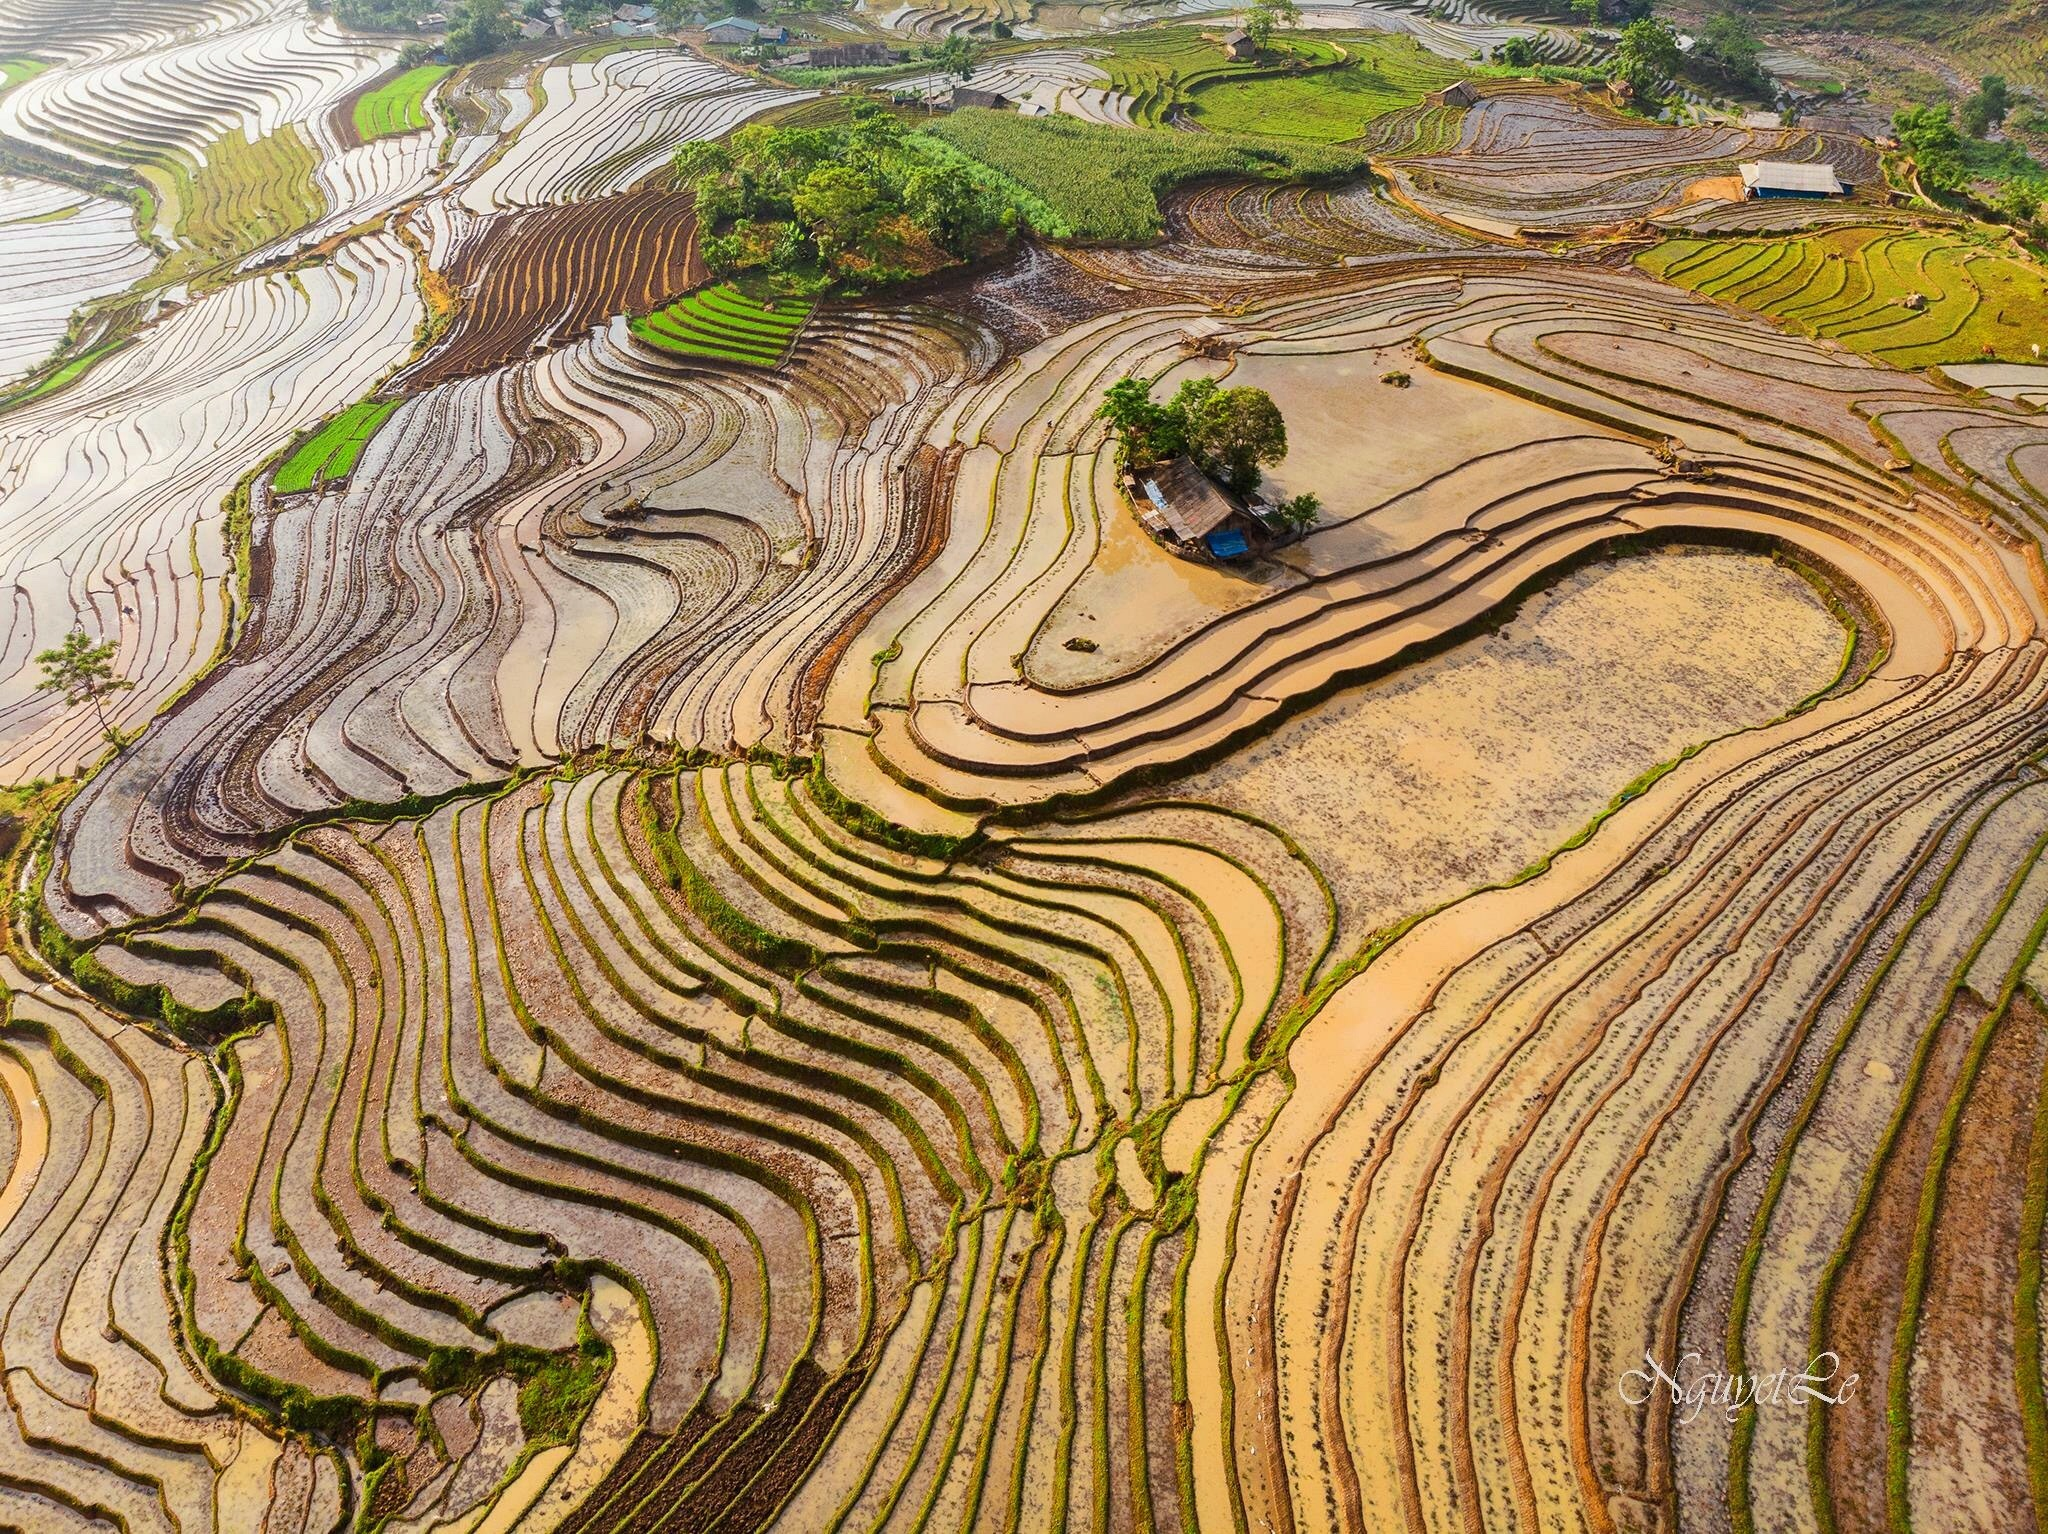 Curved line of soil (Y Ty, Vietnam) by Nguyet Le